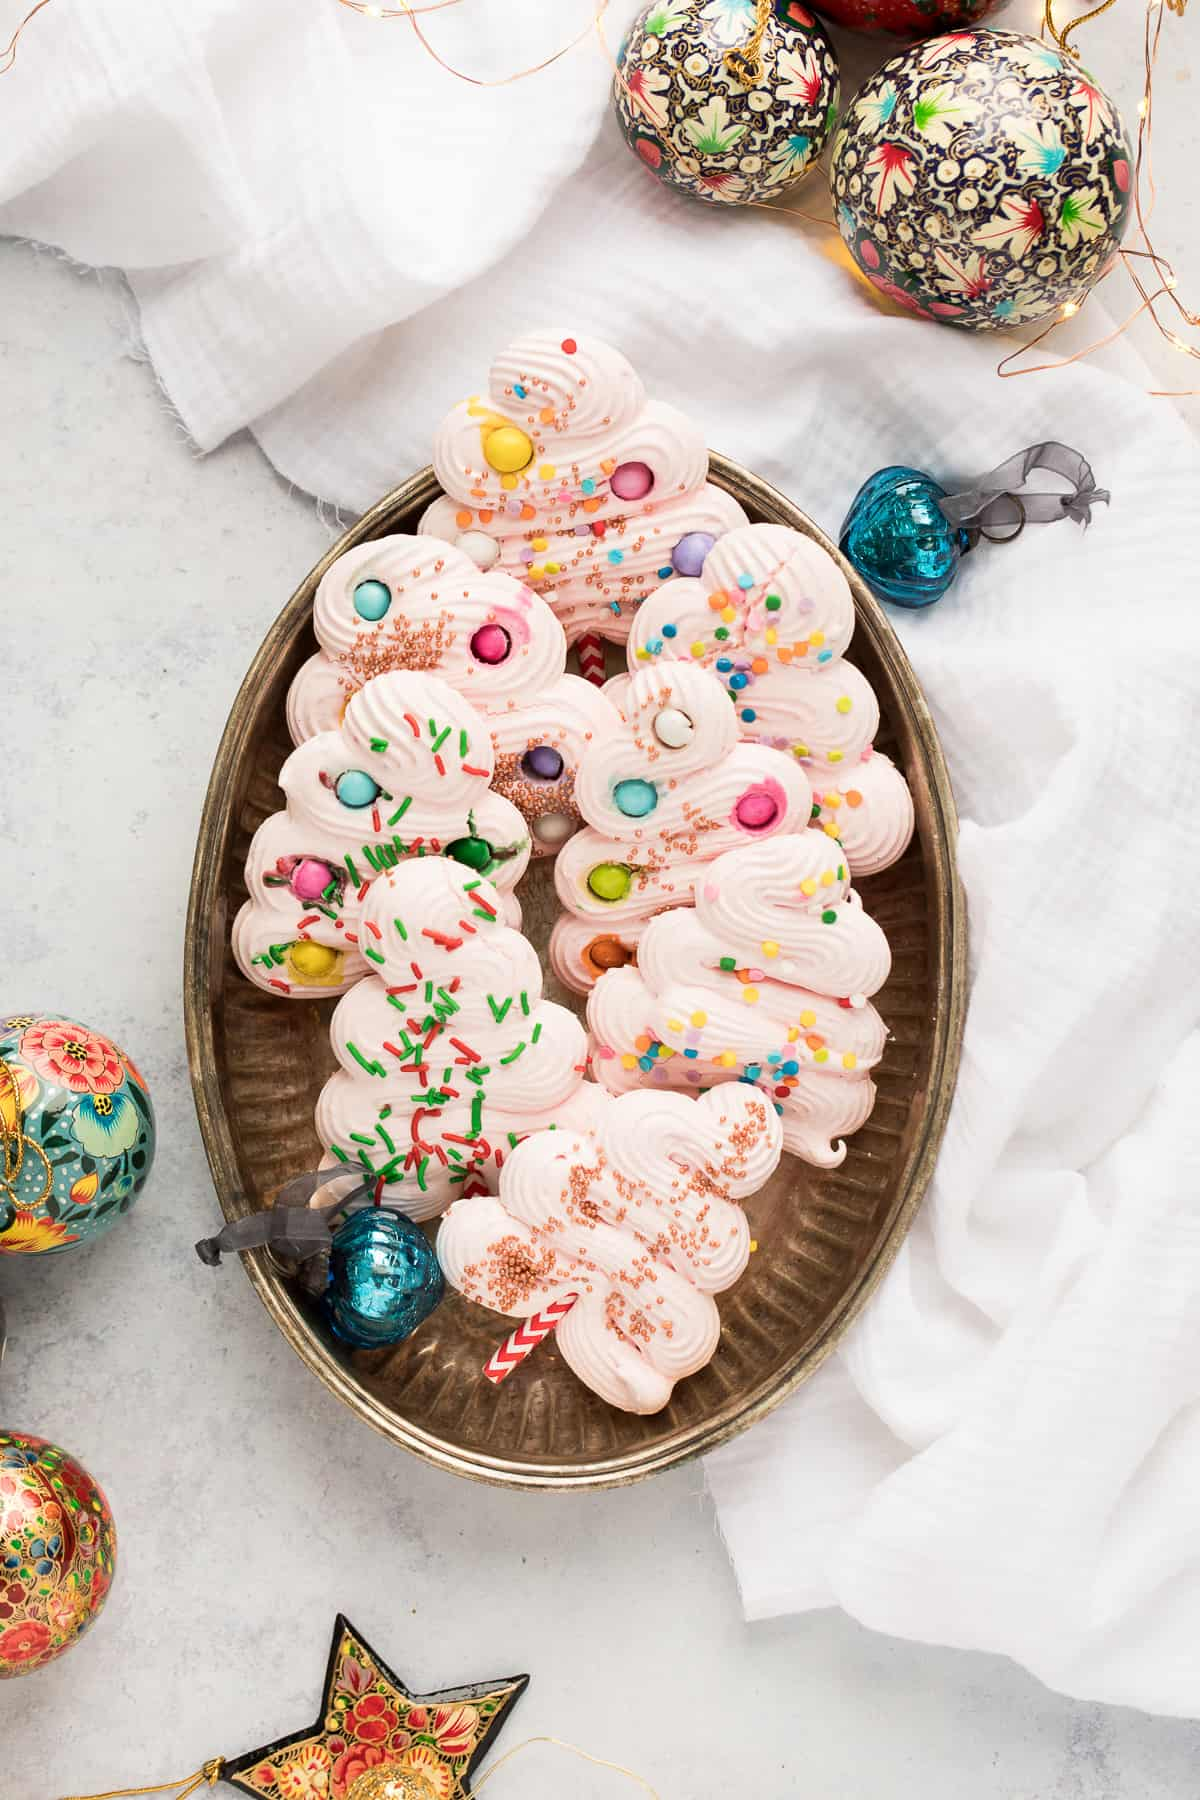 Meringue tree cookies in an oval shaped tray.